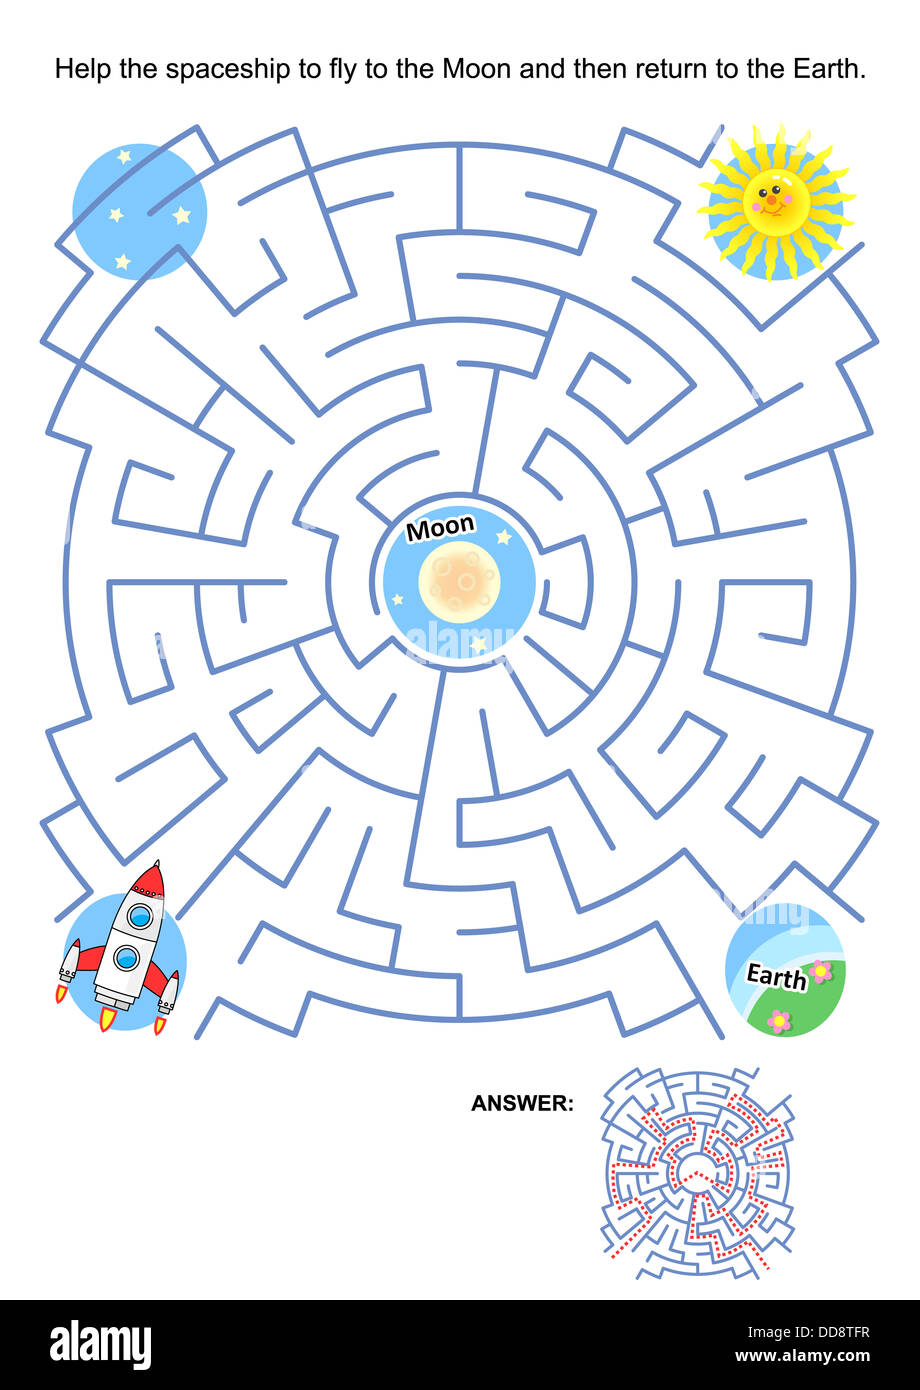 maze game or activity page for kids help the spaceship to Free Space Clip Art Outer Space Clip Art Free